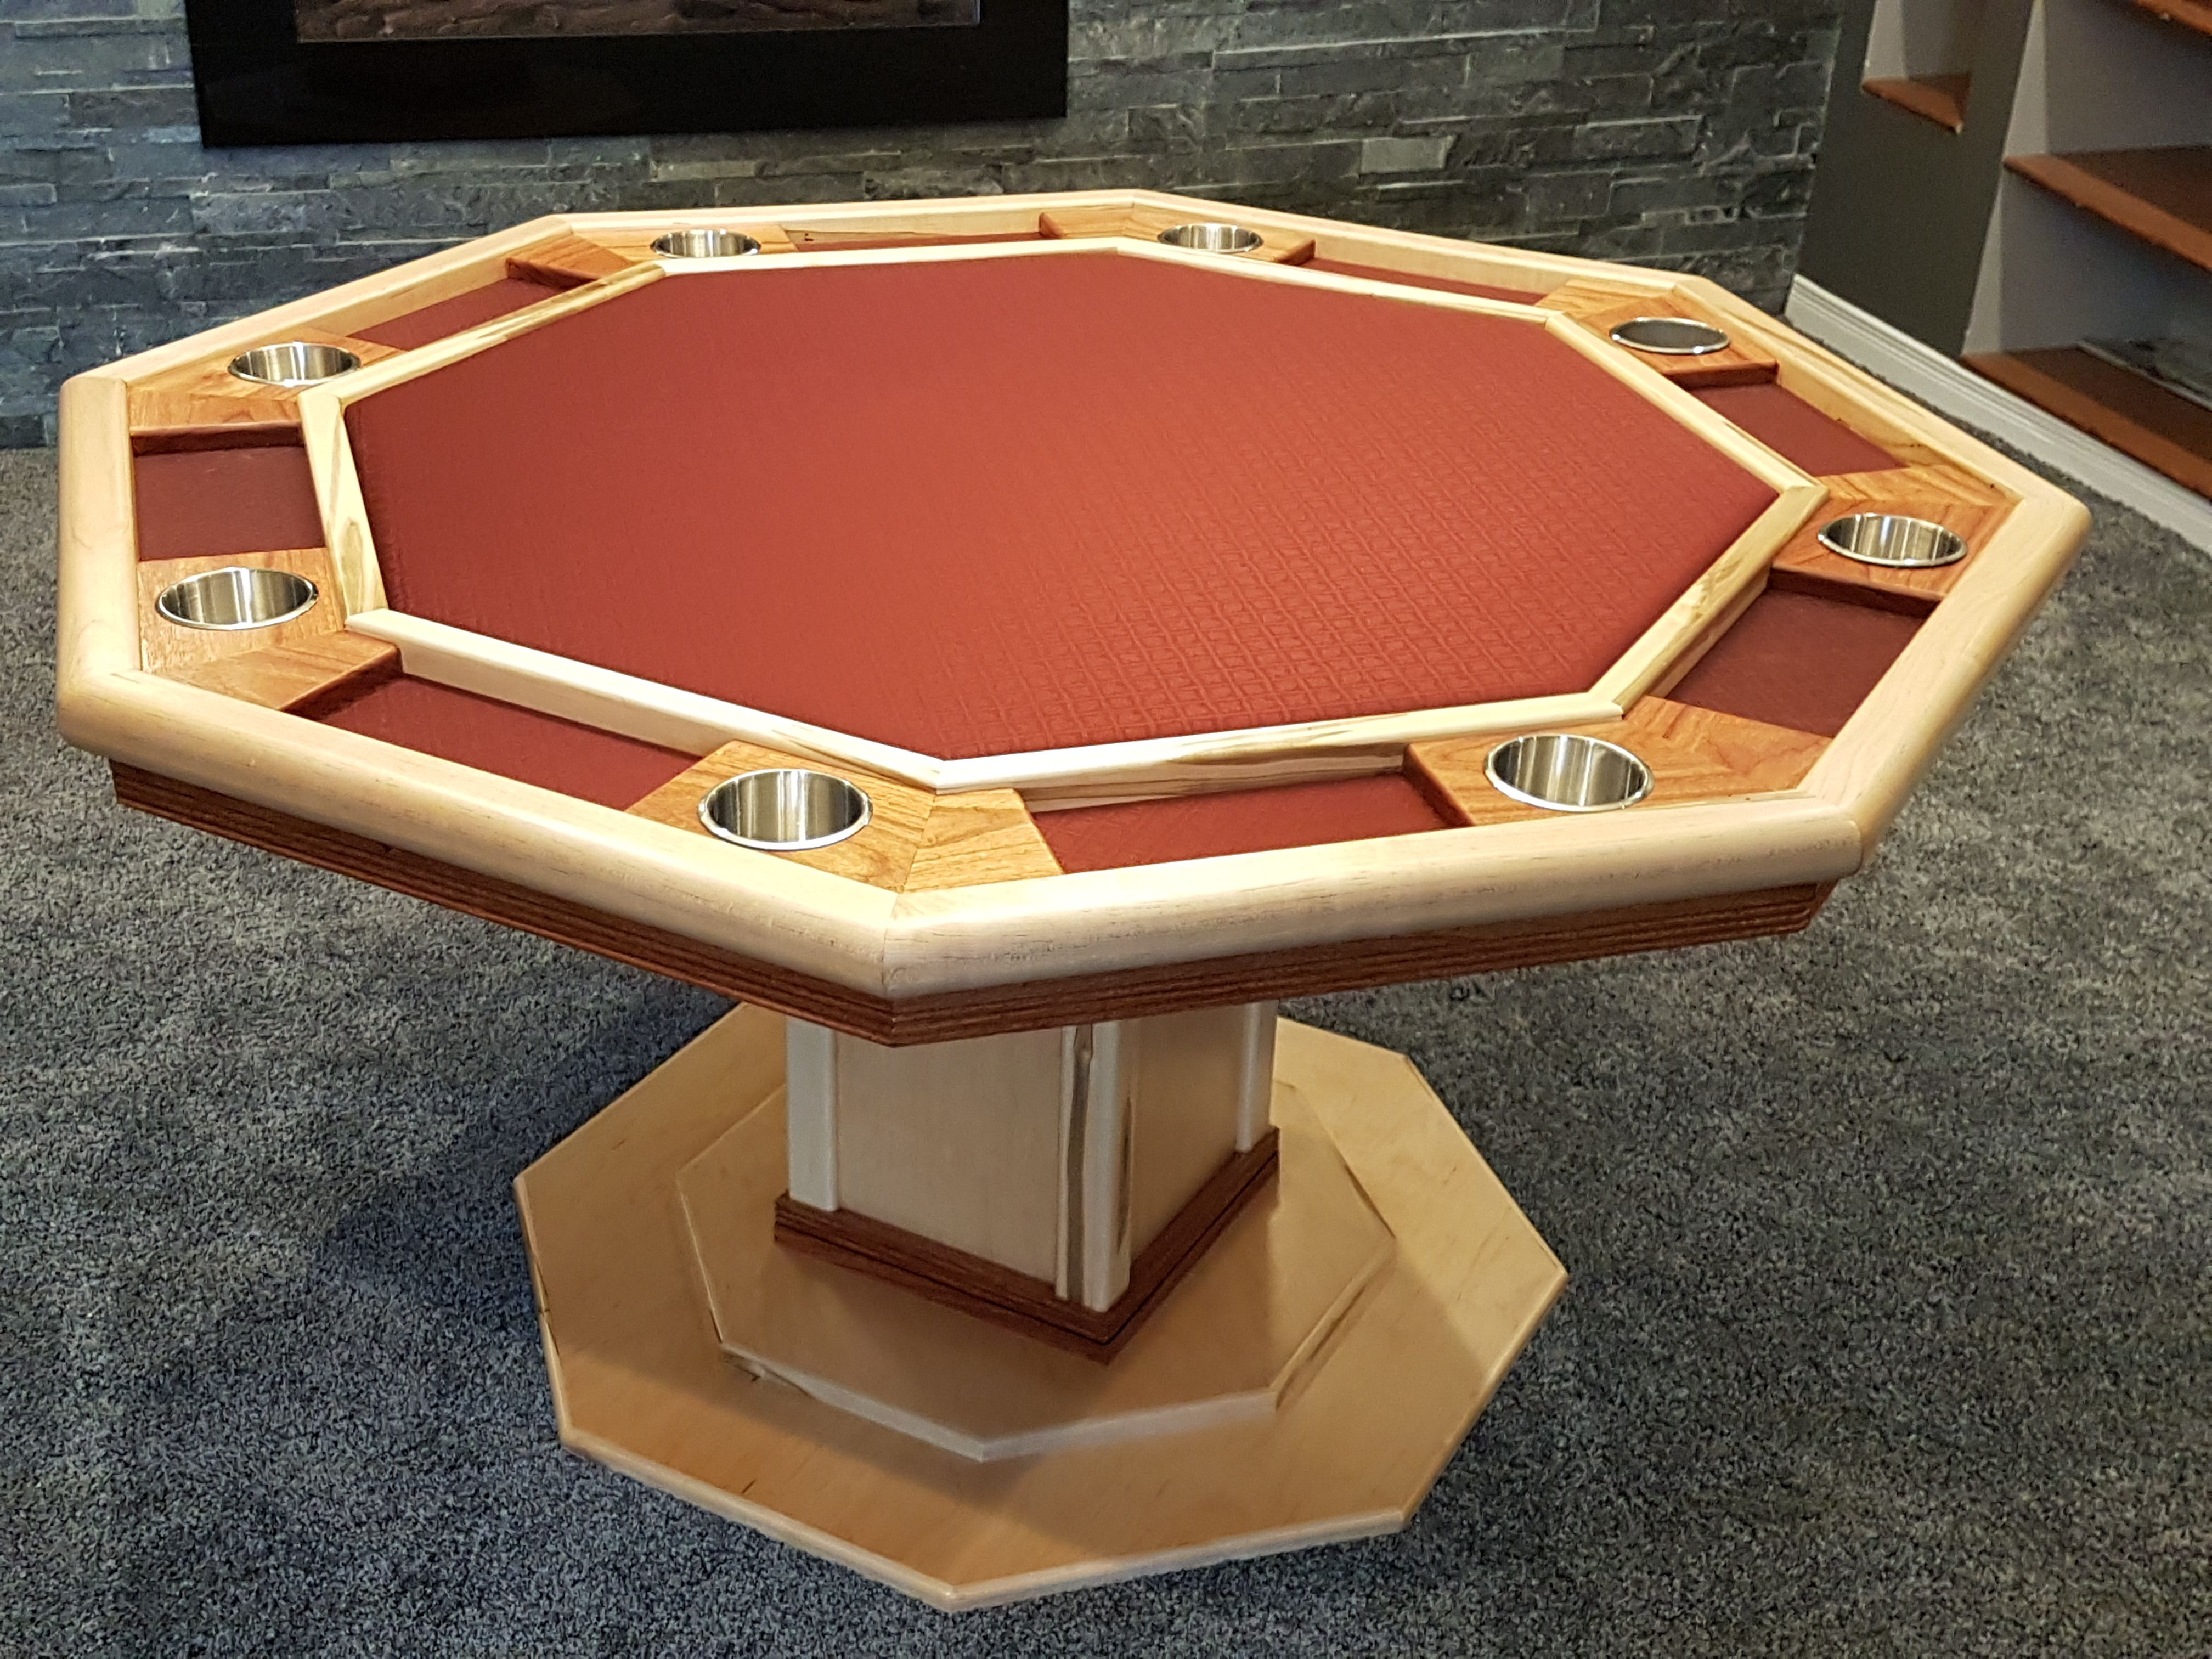 Octagonal Poker Table Ambrosia Maple And Canary Wood Poker Table Plans Poker Table Diy Poker Table